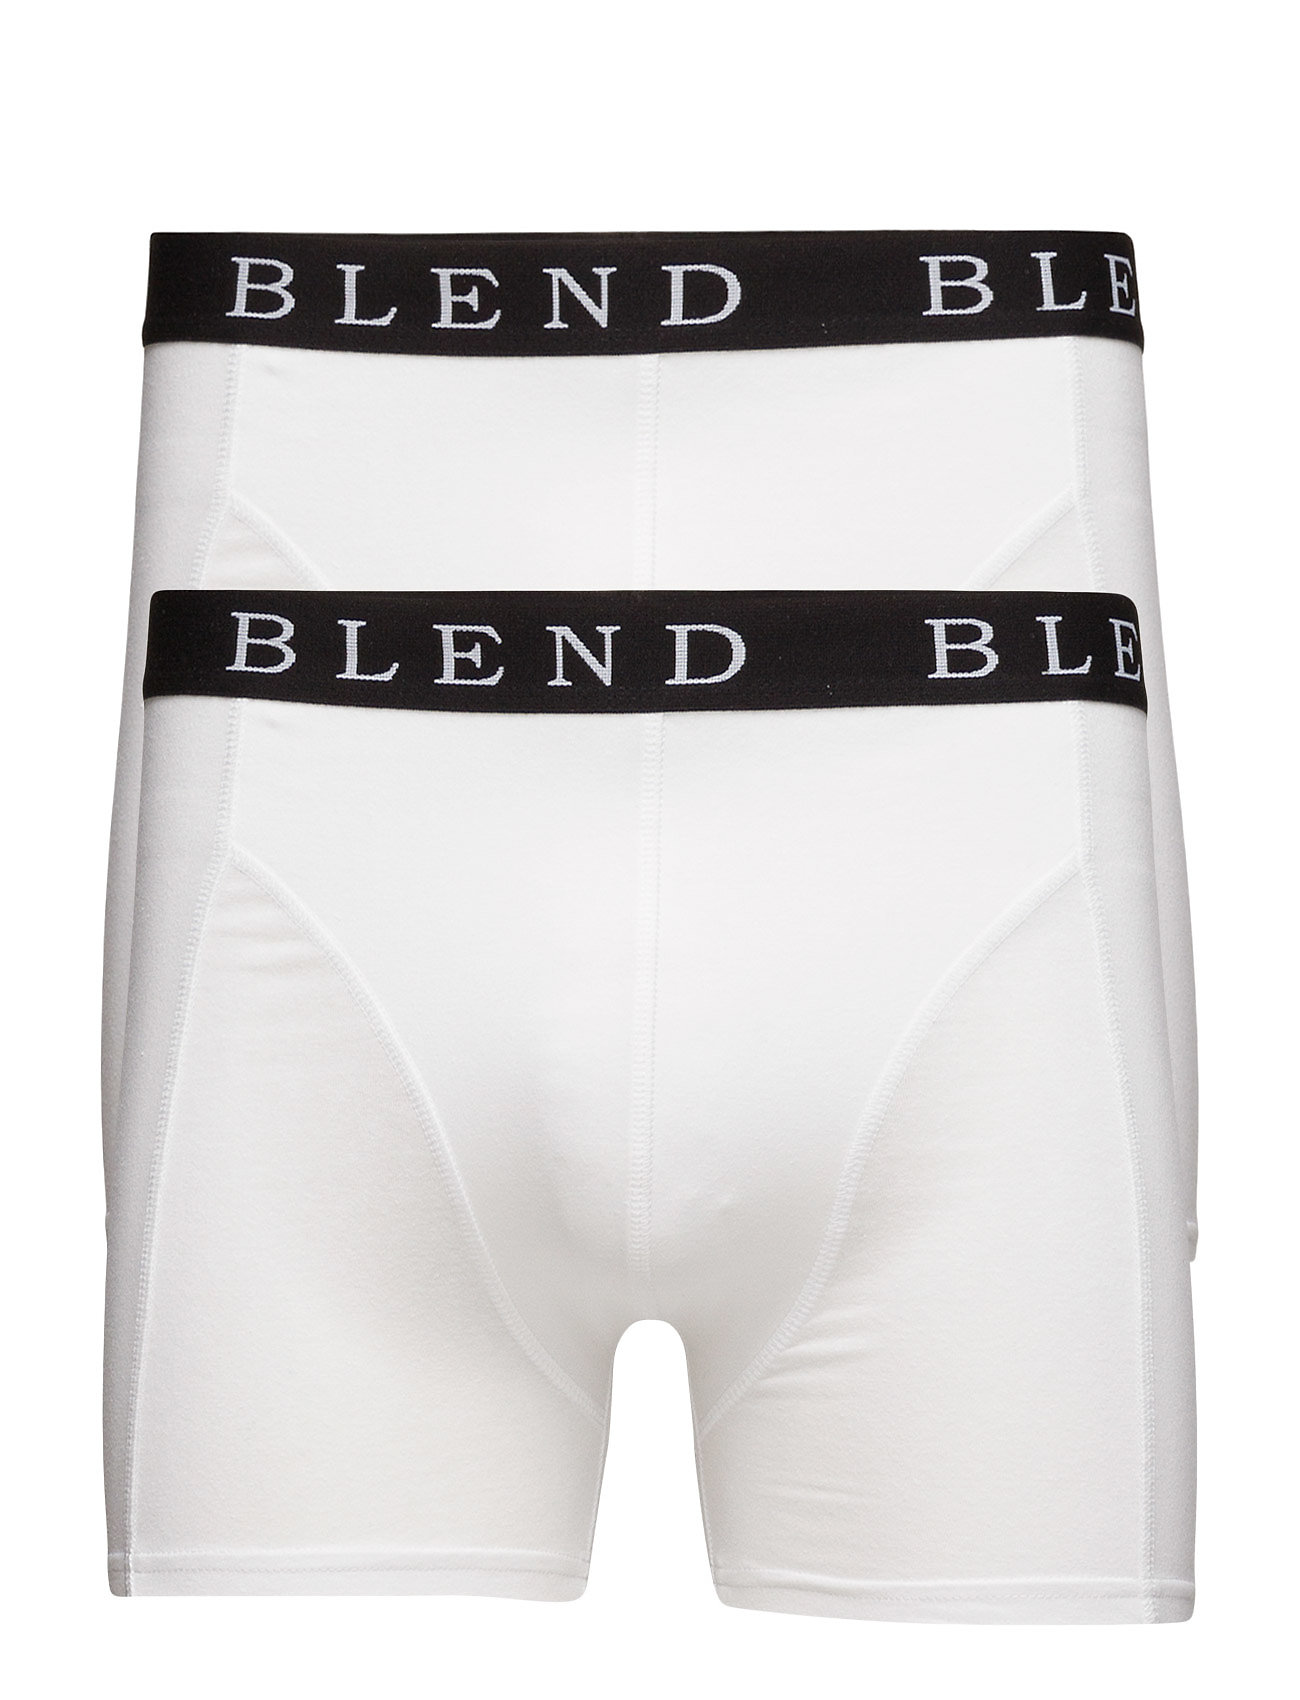 Image of Bhned Underwear 2-Pack Noos Boxershorts Hvid Blend (3448364273)